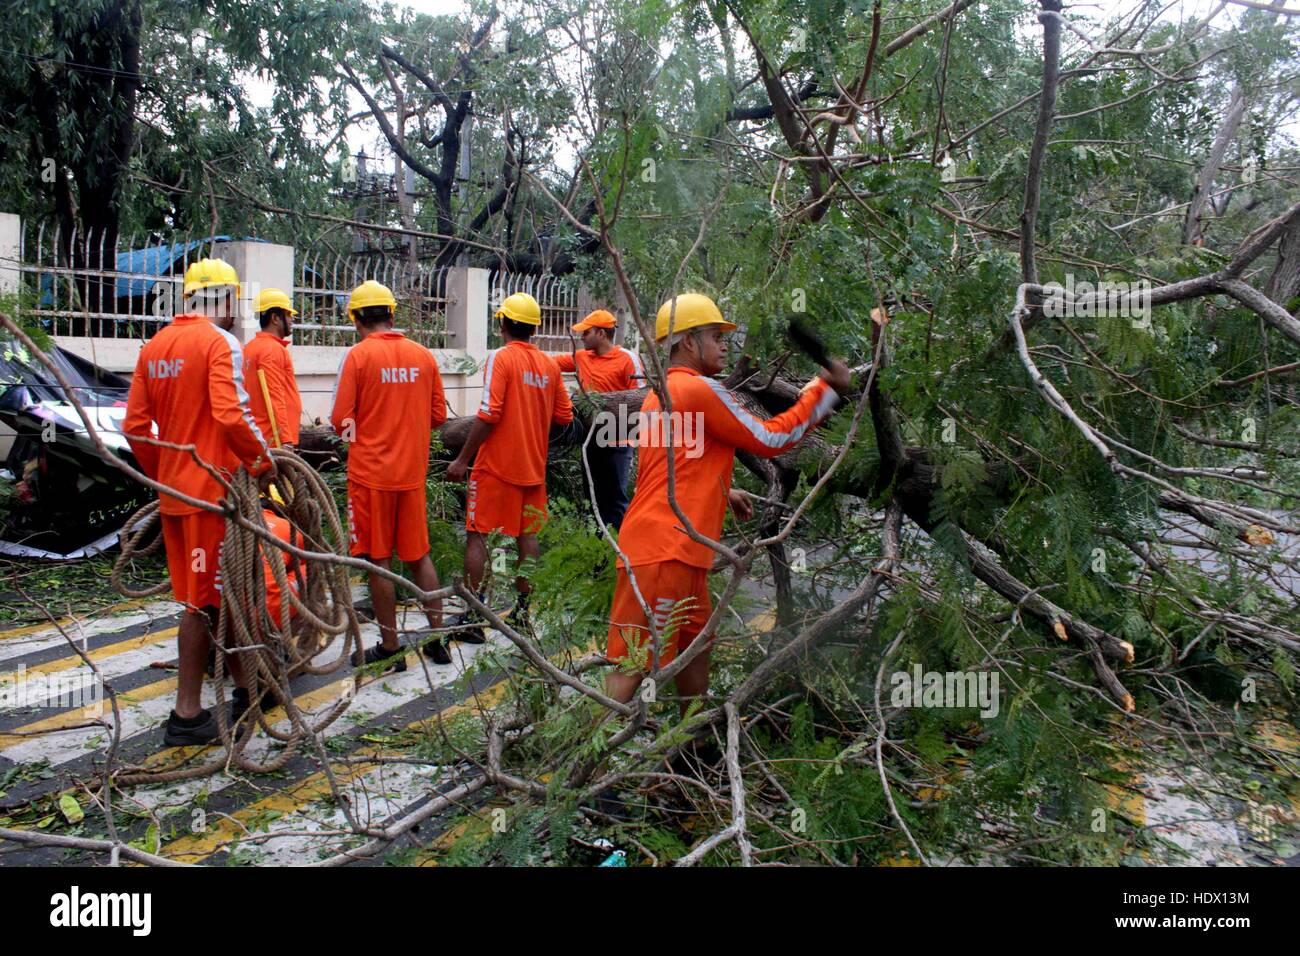 Members of the Disaster Response Force (NDRF) removing trees that came in the path of Cyclone Vardah, lie uprooted - Stock Image